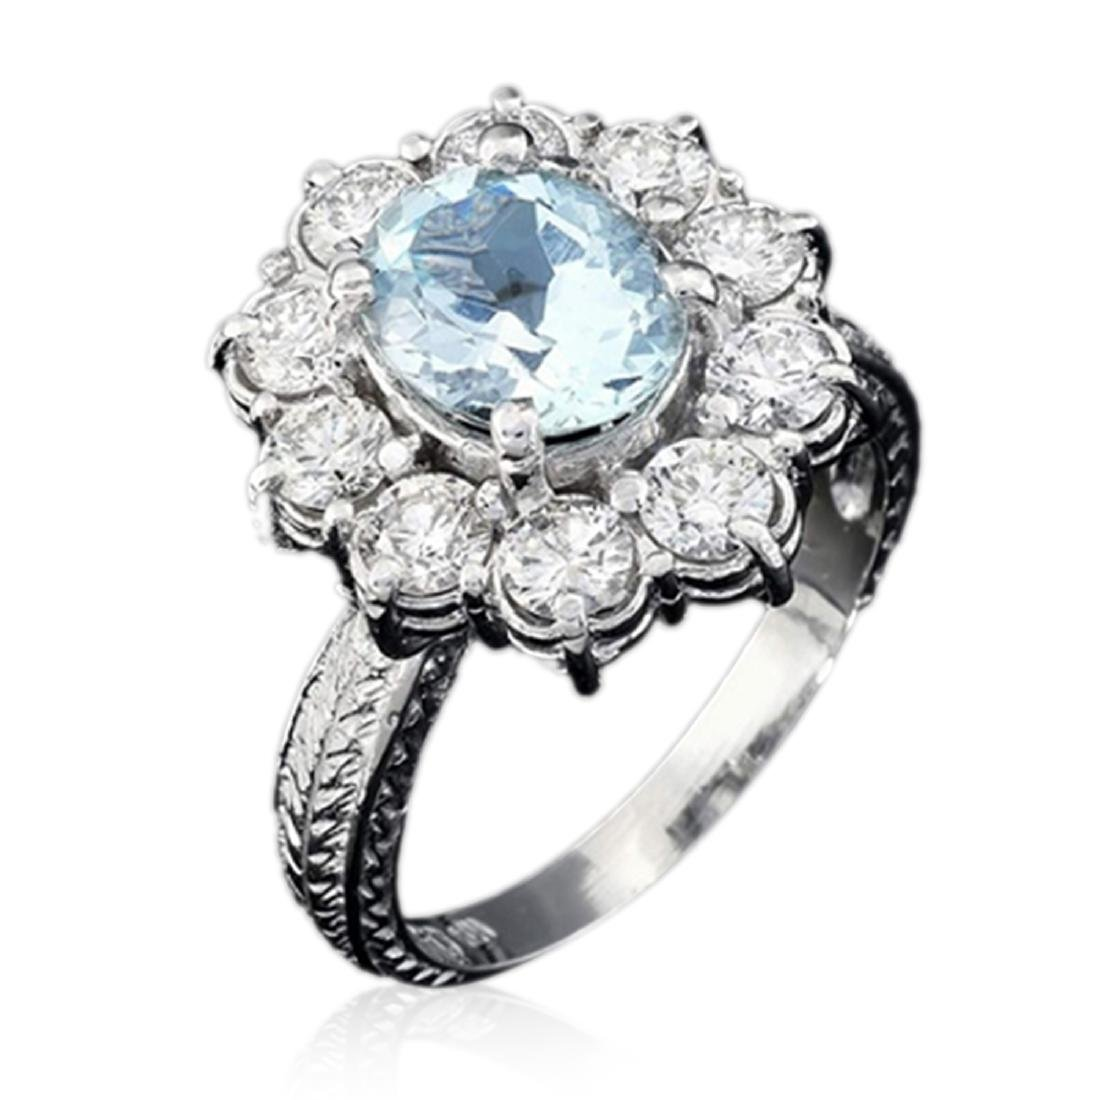 3.30 Carat Natural Aquamarine 18K Solid White Gold